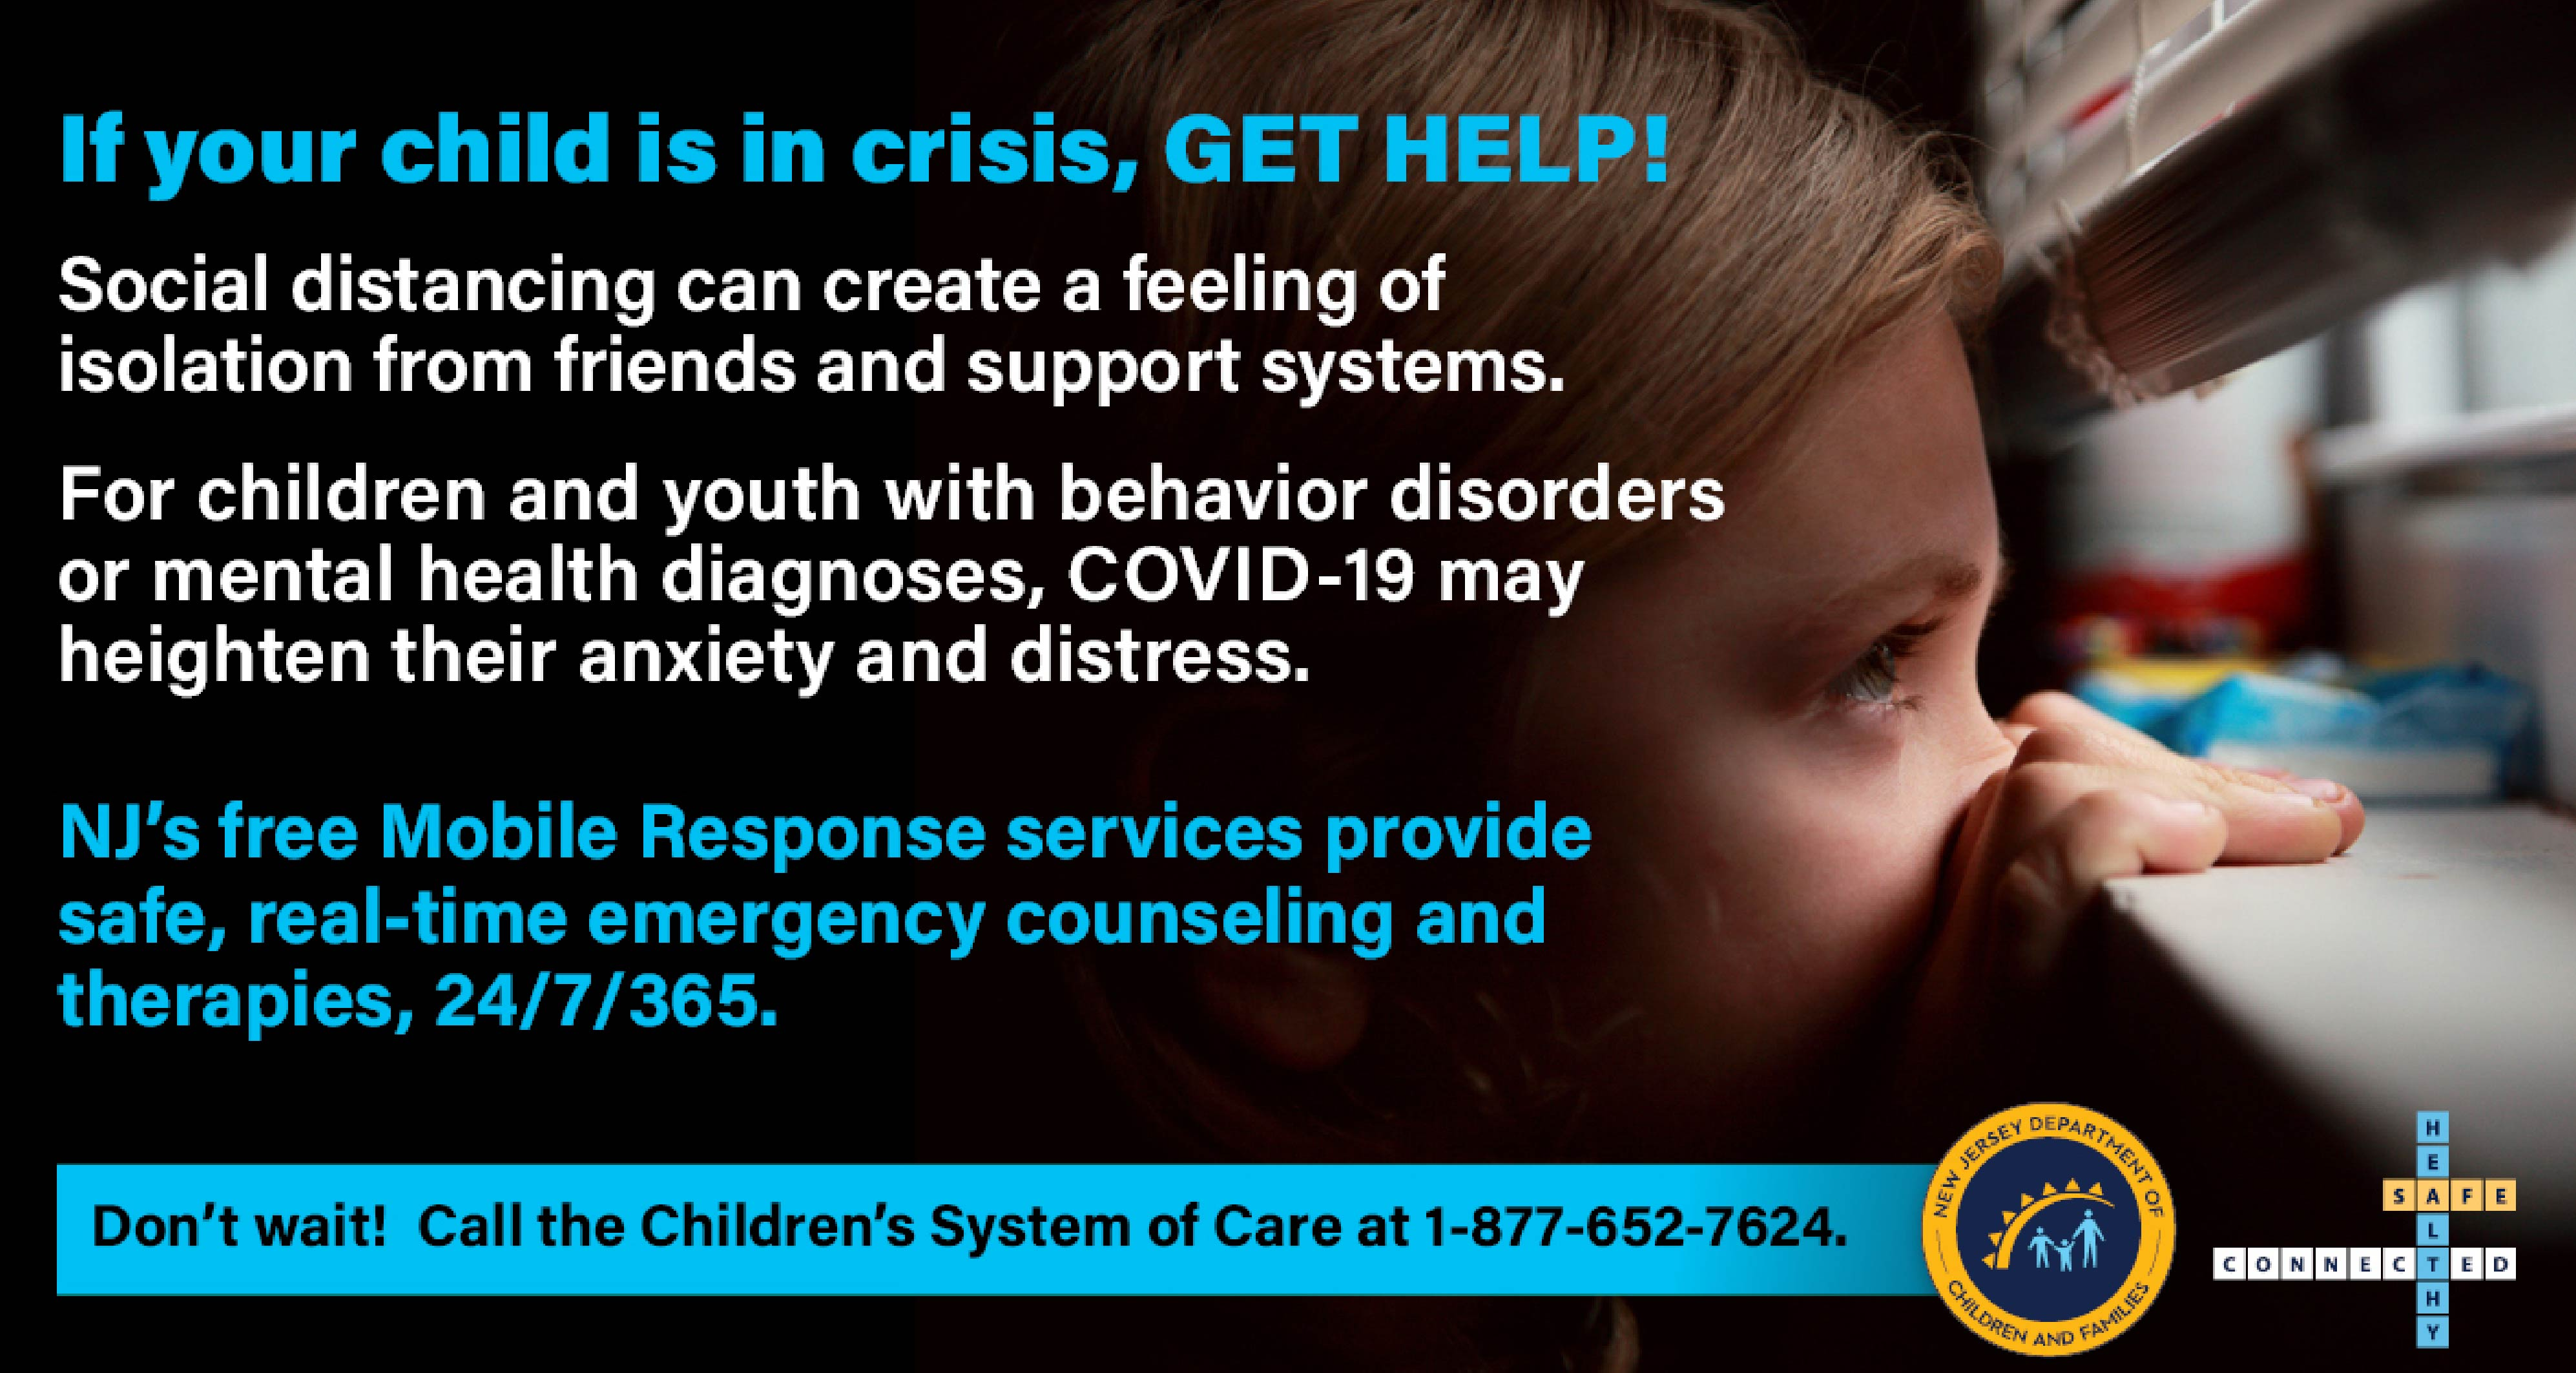 NJDCF  campaign  to promote Children's System of Care  and the behavioral & mental health services  available to families throughout NJ.